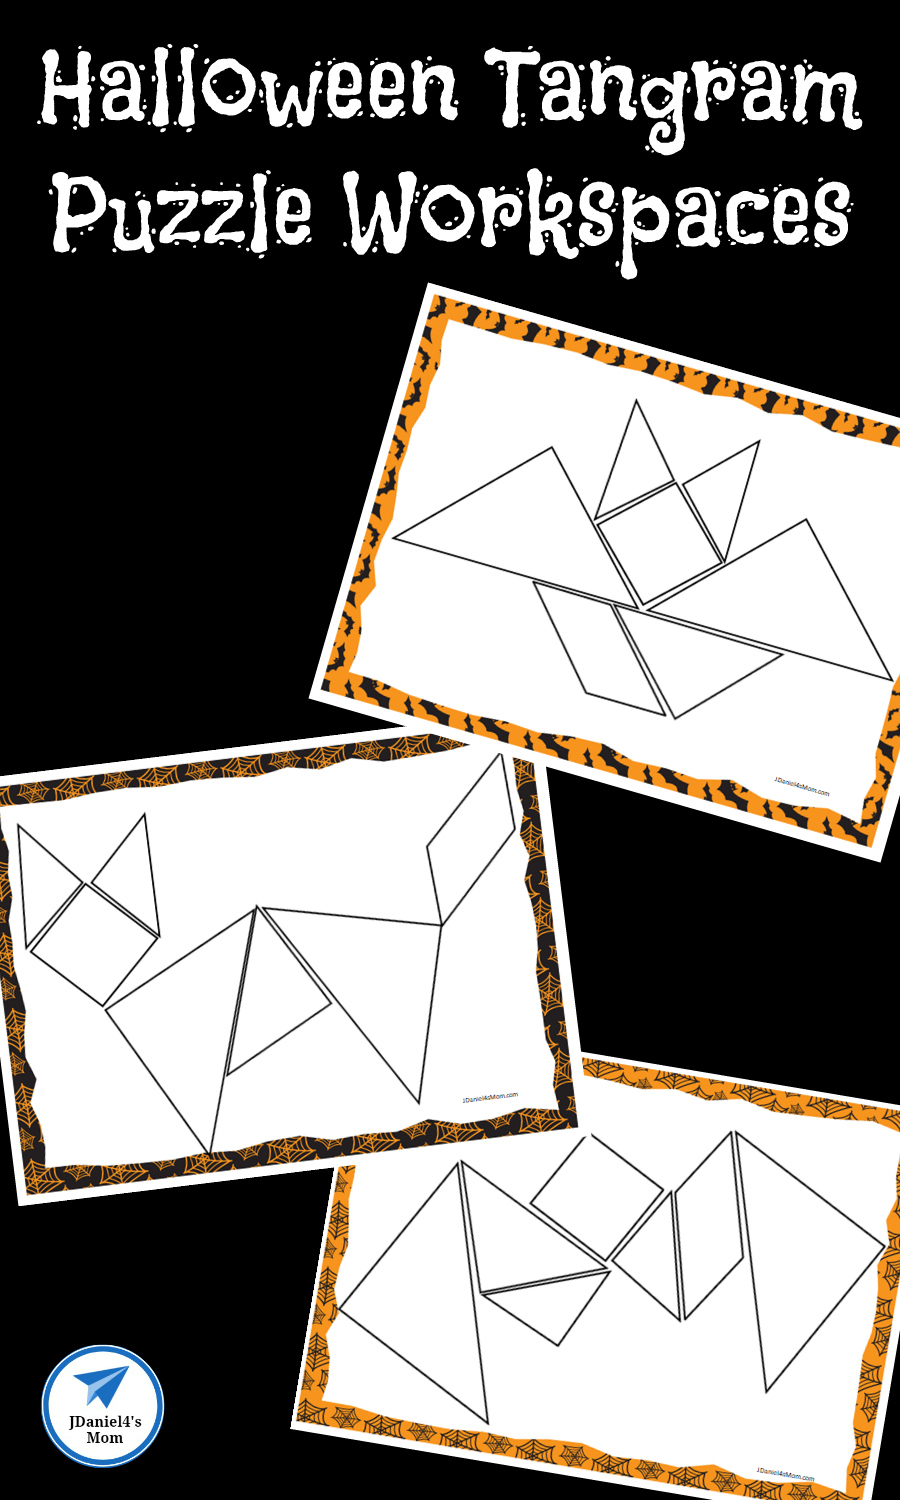 Halloween Themed Printable Tangram Puzzles - Jdaniel4S Mom